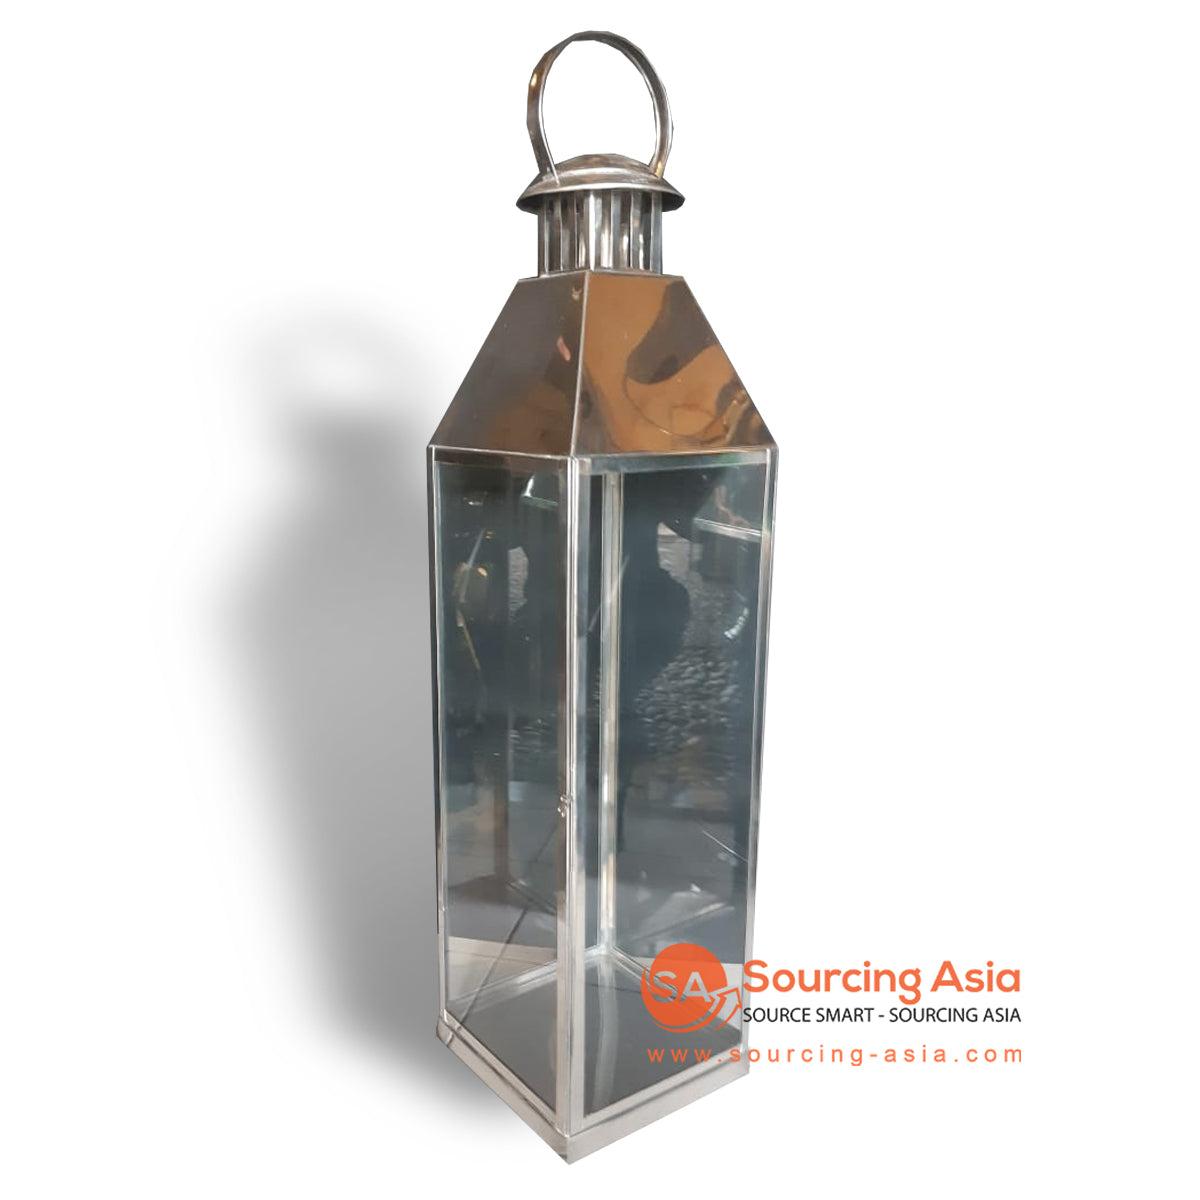 ODE046 COPPER LANTERN